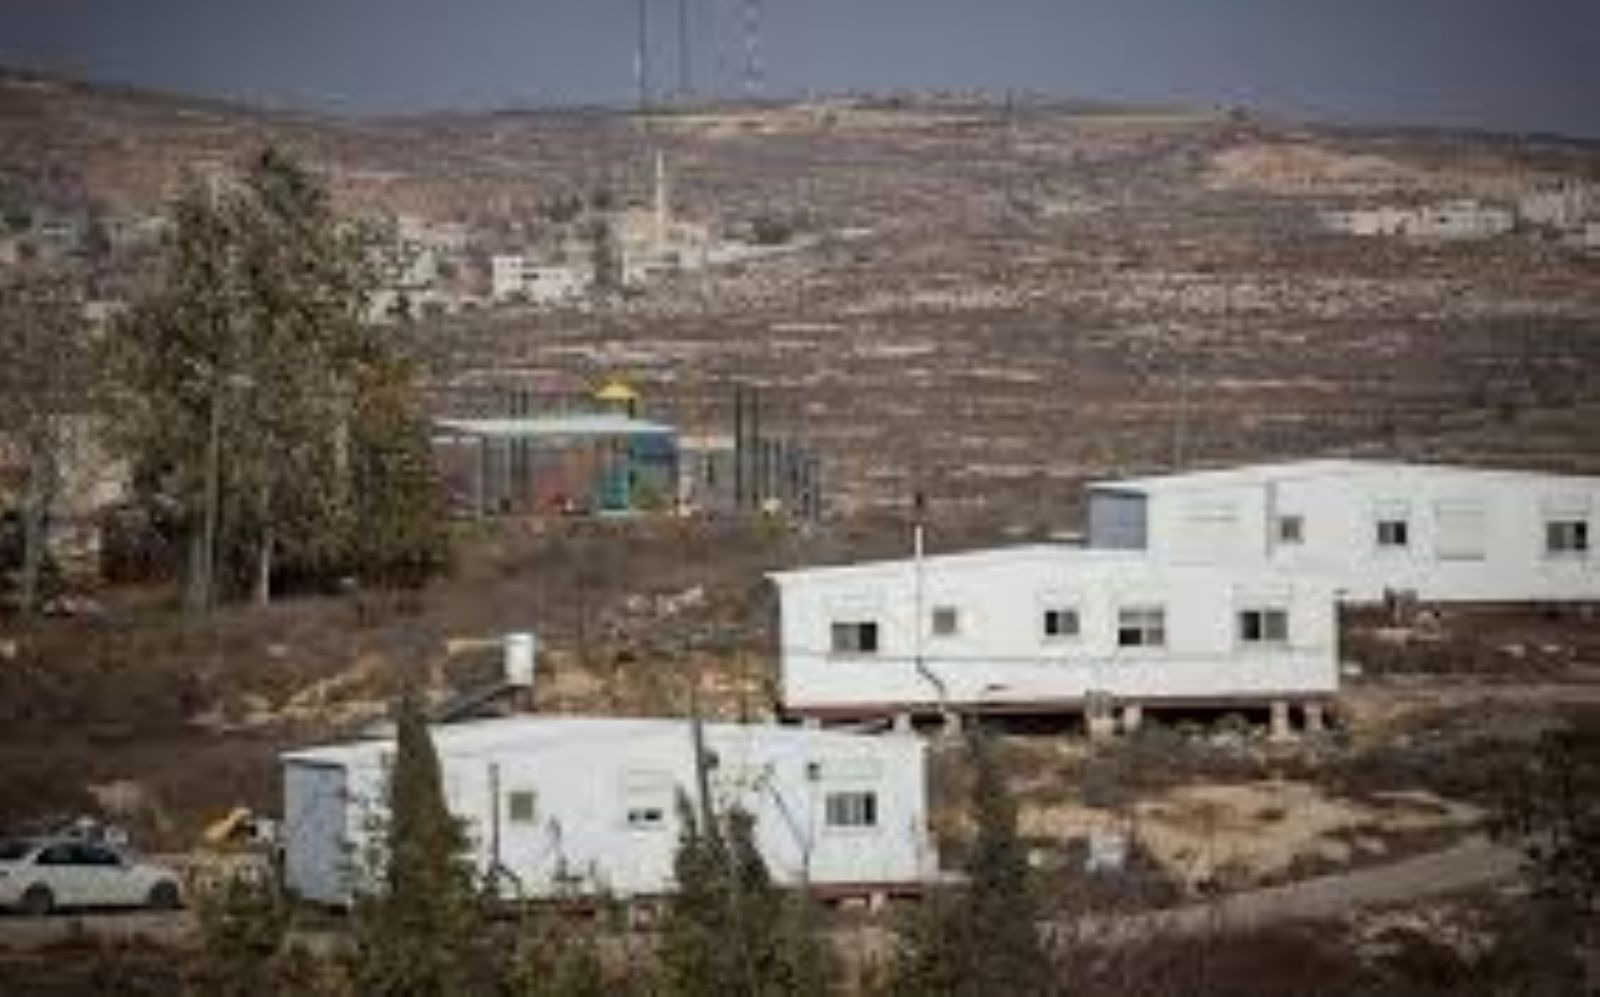 Ex-Israel chief military prosecutor lives in home built on privately-owned Palestinian land